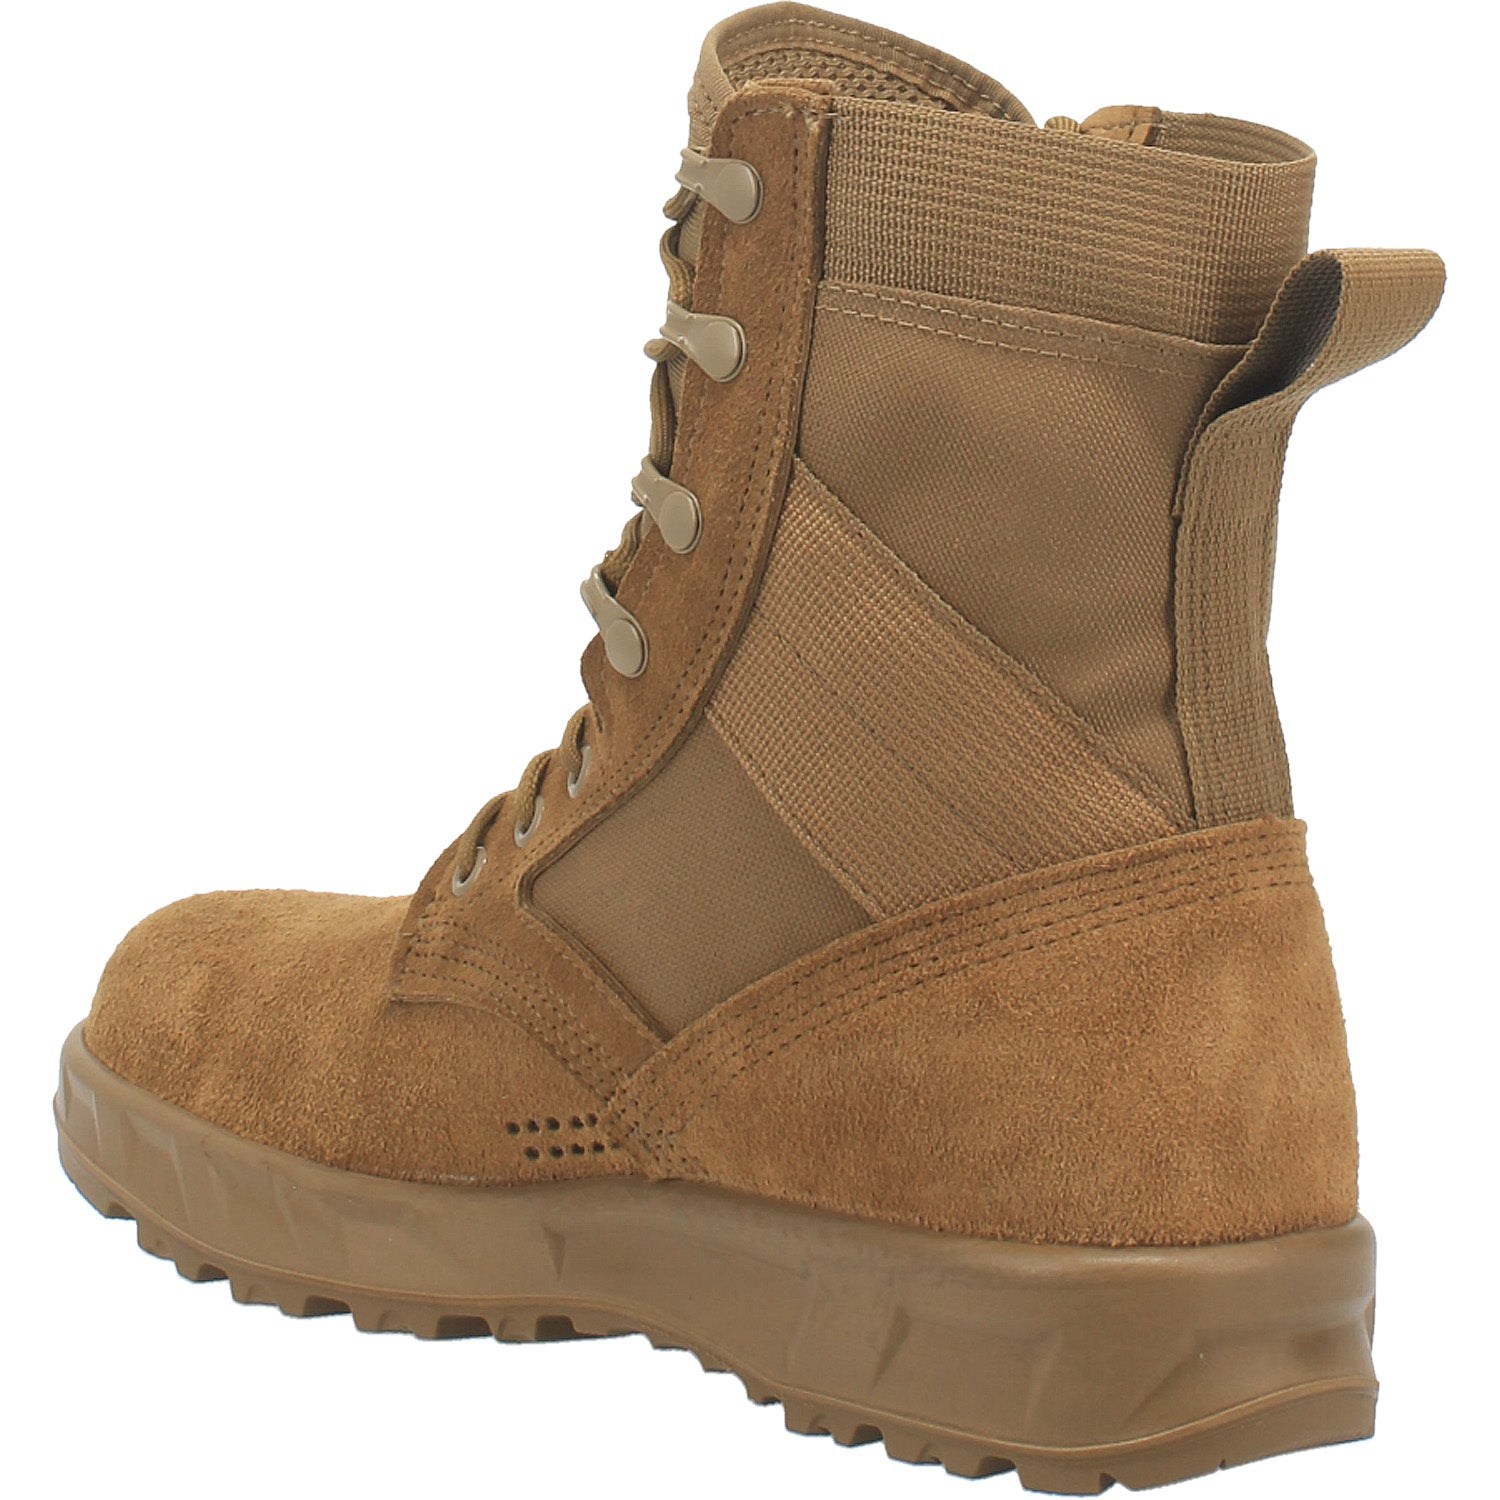 T2 Ultra Light Hot Weather Combat Boot 14940793307178